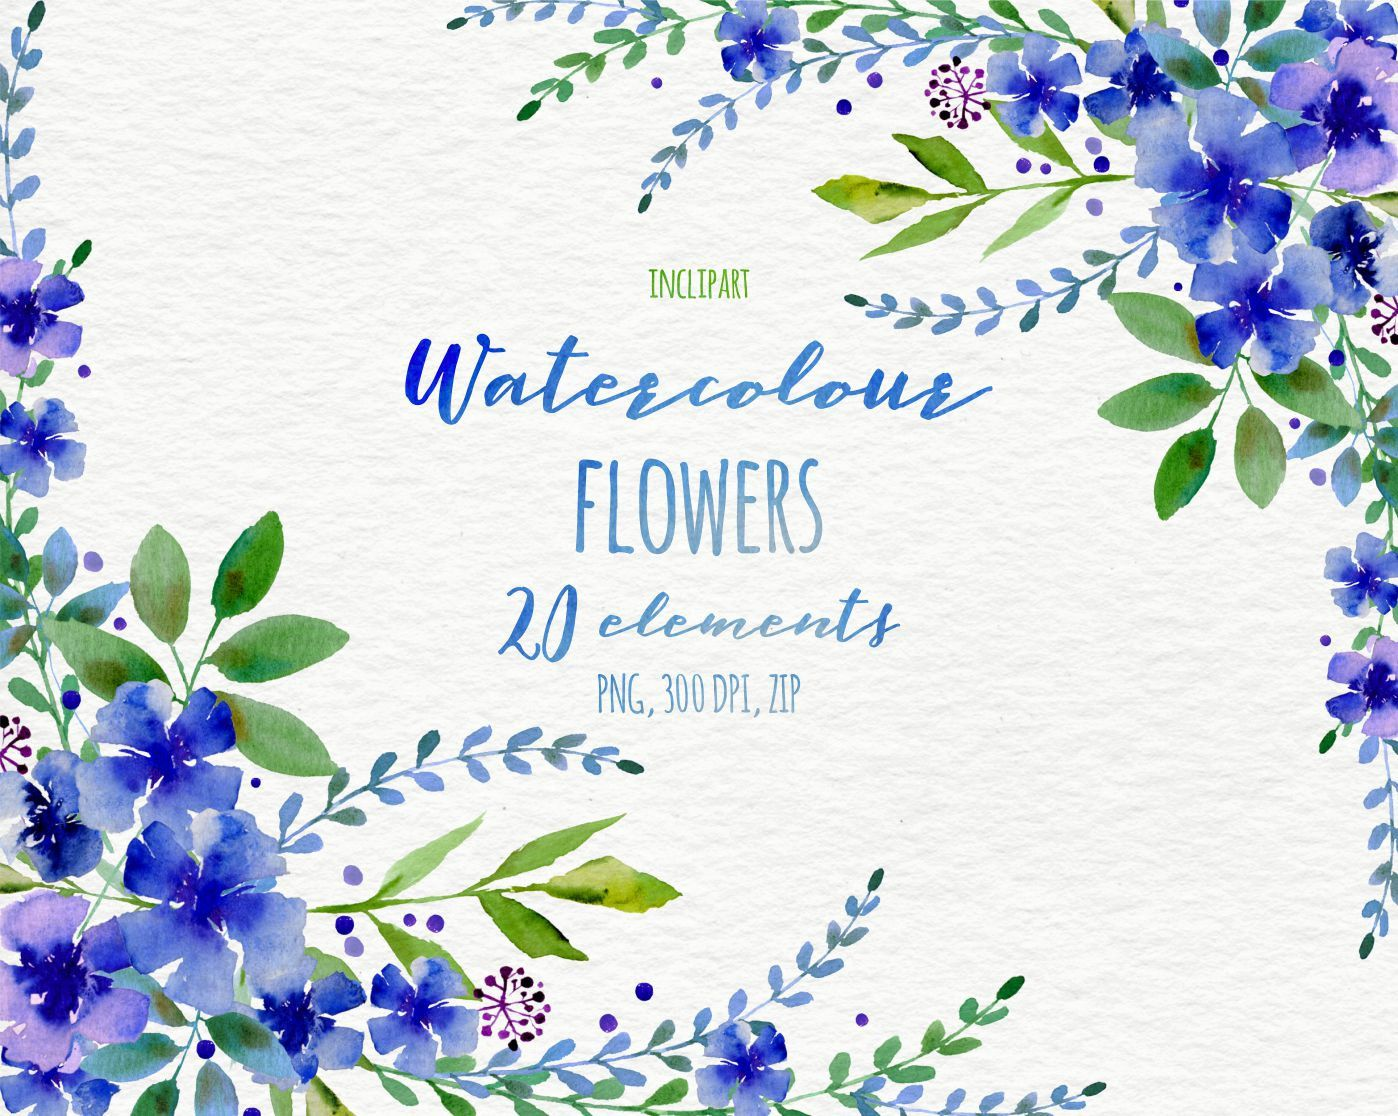 Watercolor flower clipart floral wreath corner garland clipart watercolor border floral wreath watercolor watercolor paper watercolor flowers flower borders izmirmasajfo